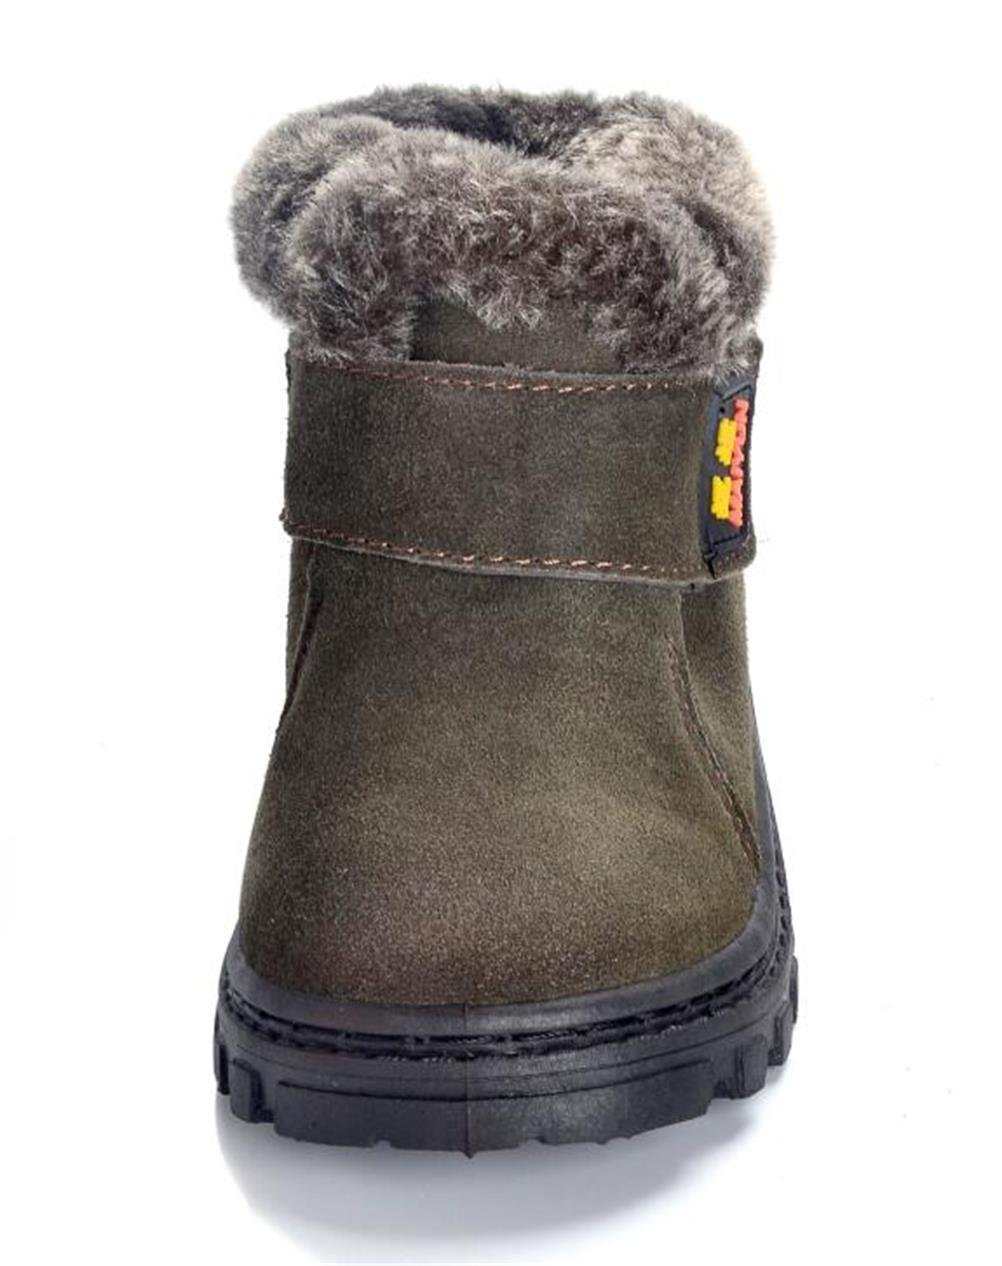 DADAWEN Boy's Girl's Classic Waterproof Suede Leather Snow Boots (Toddler/Little Kid/Big Kid) Green US Size 11 M Little Kid by DADAWEN (Image #3)